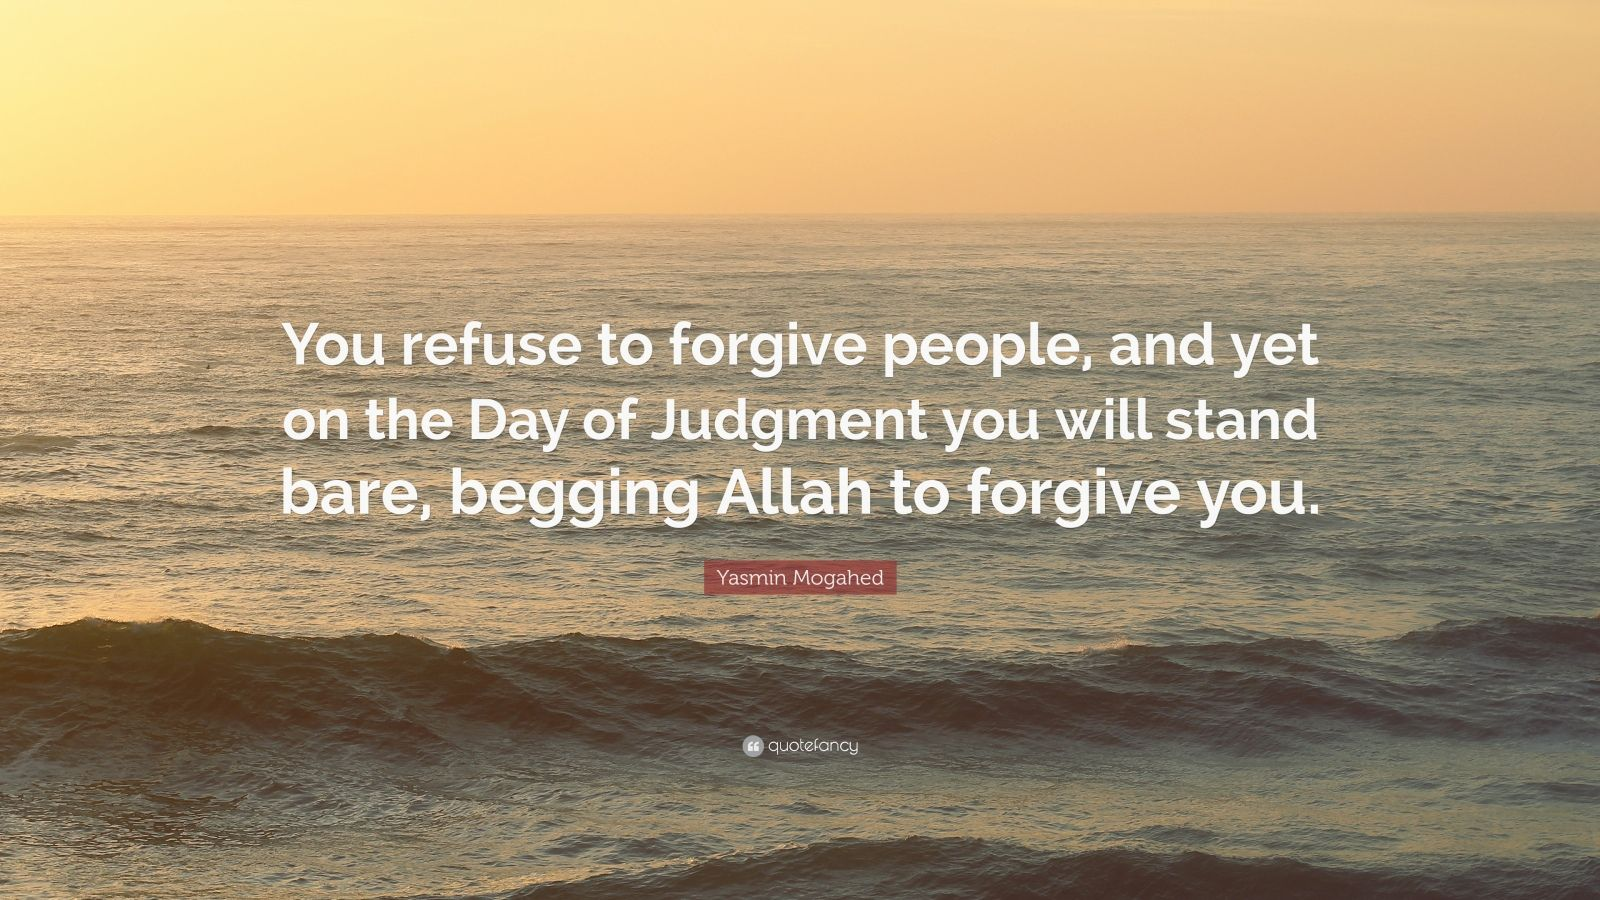 "Yasmin Mogahed Quote: ""You refuse to forgive people, and yet on the Day of Judgment you will stand bare, begging Allah to forgive you."""